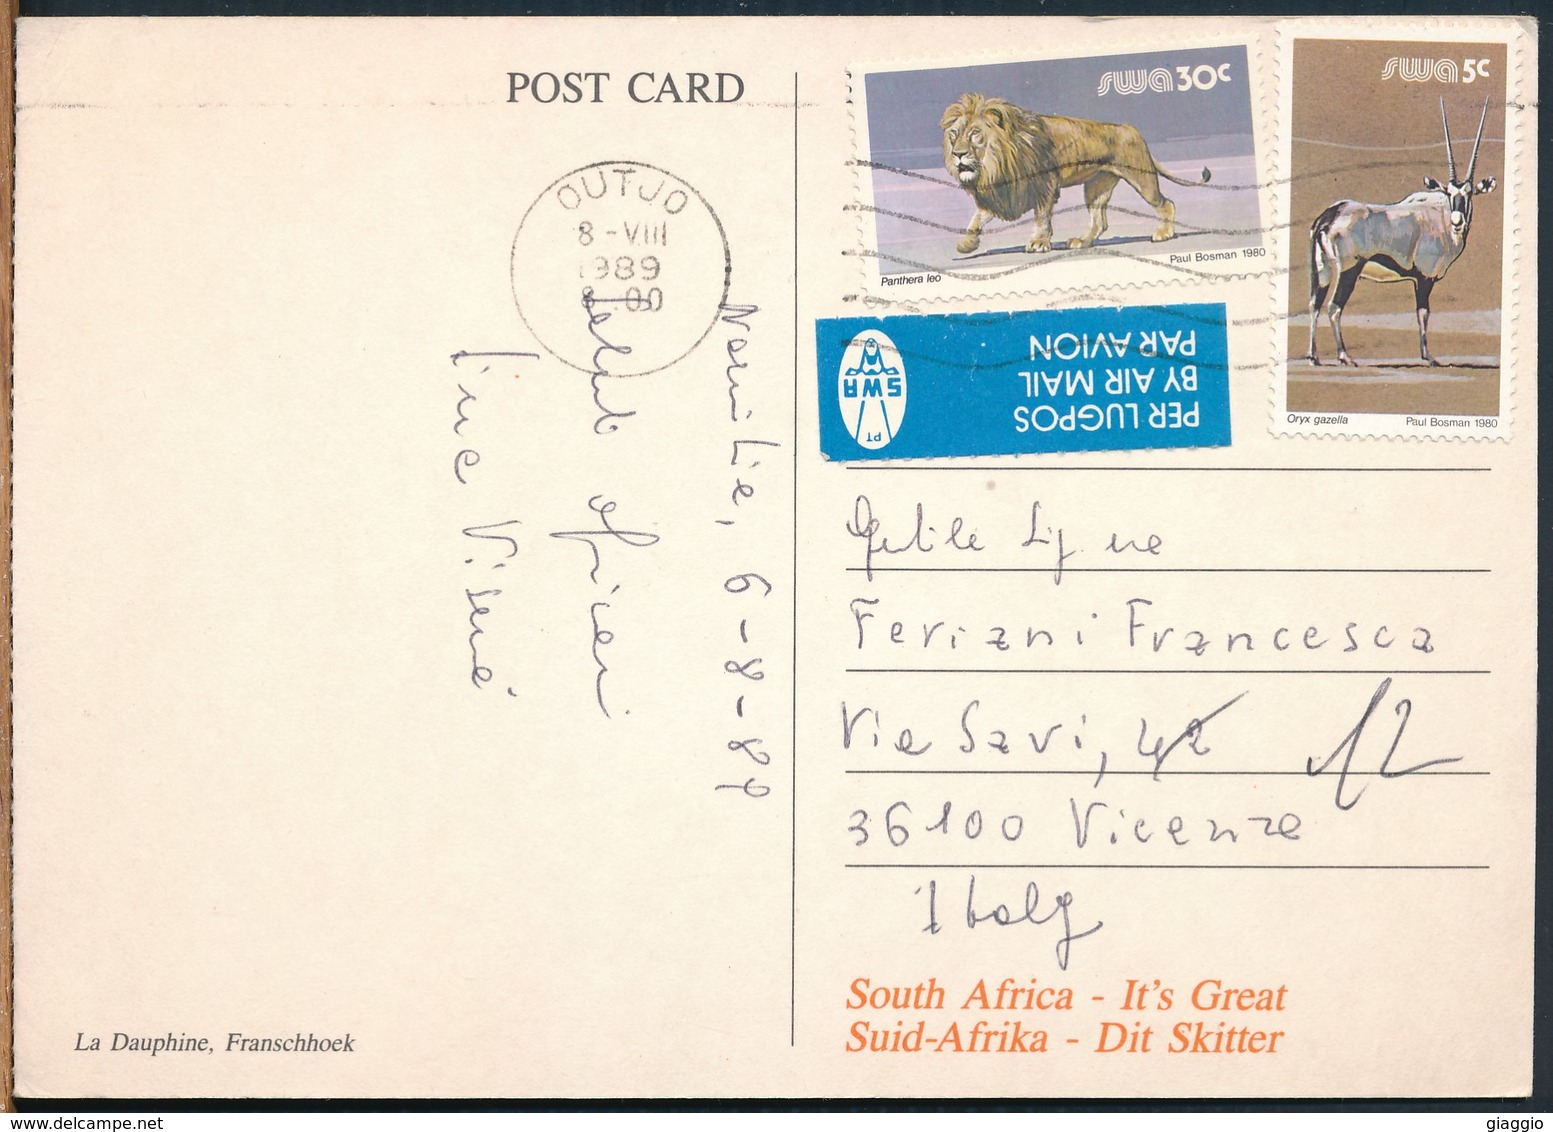 °°° 18903 - SWA NAMIBIA - LA DAUPHINE , FRANSCHHOEK - 1989 With Stamps °°° - Namibia